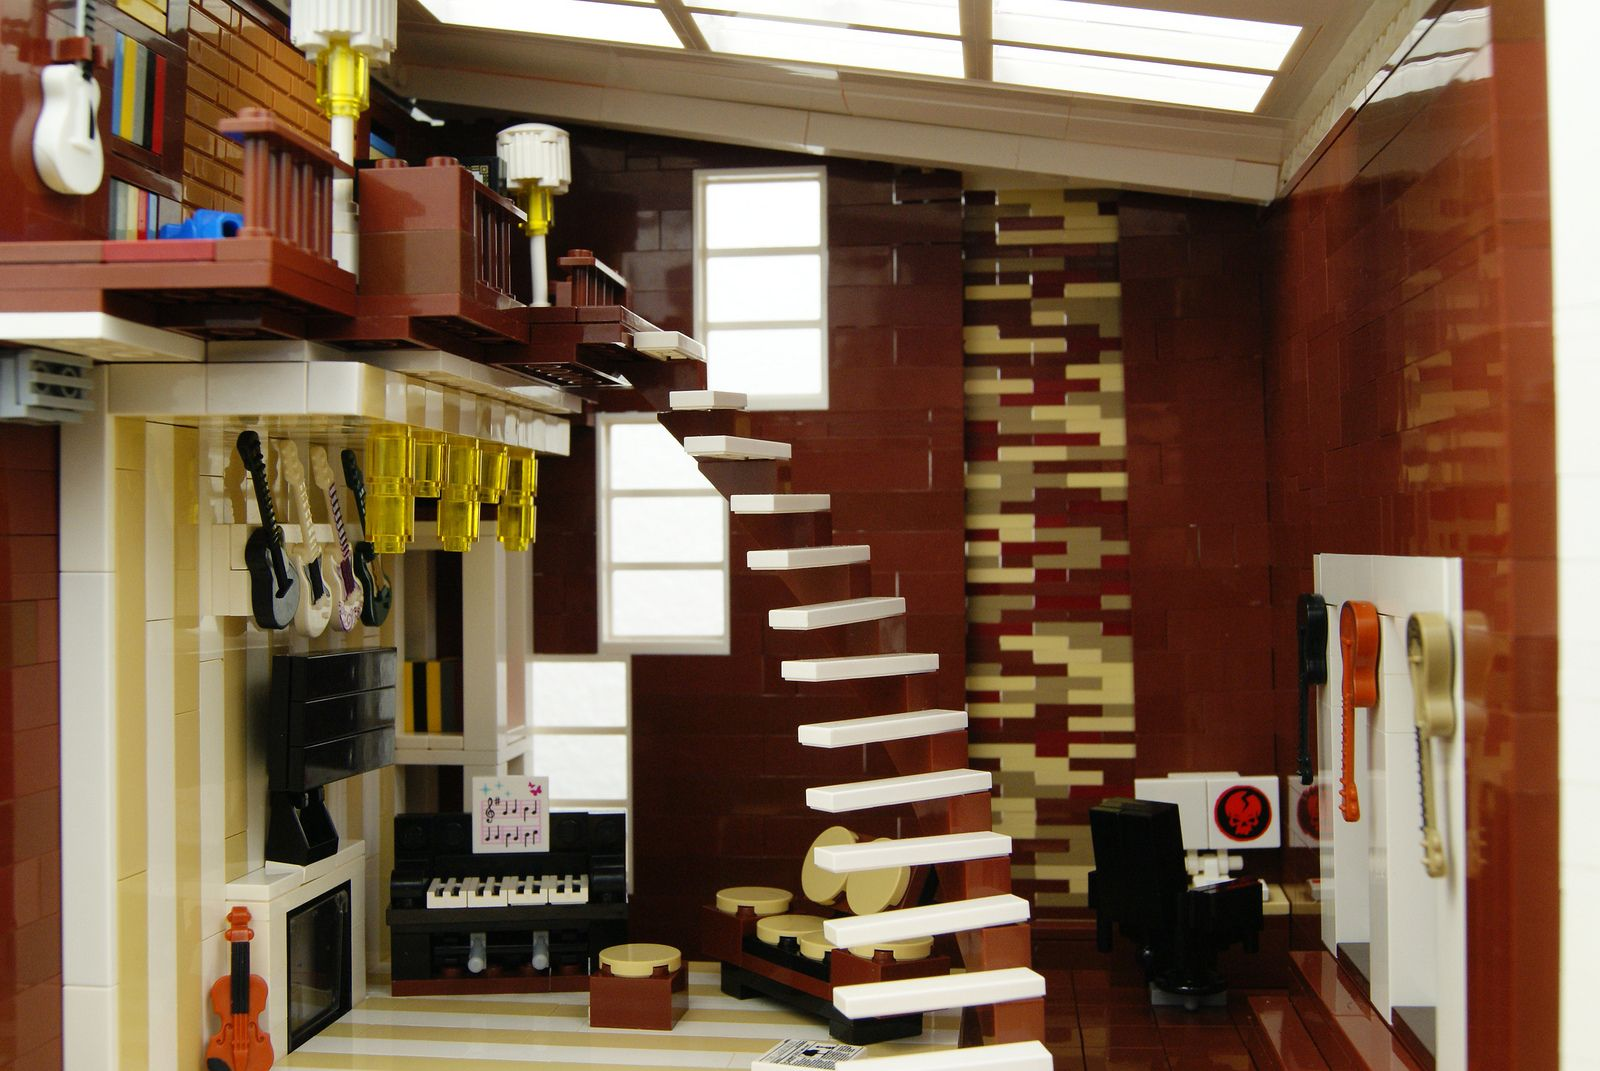 Bon A Nicely Detailed Modern House Interior. #LEGO Model By Zaberca.